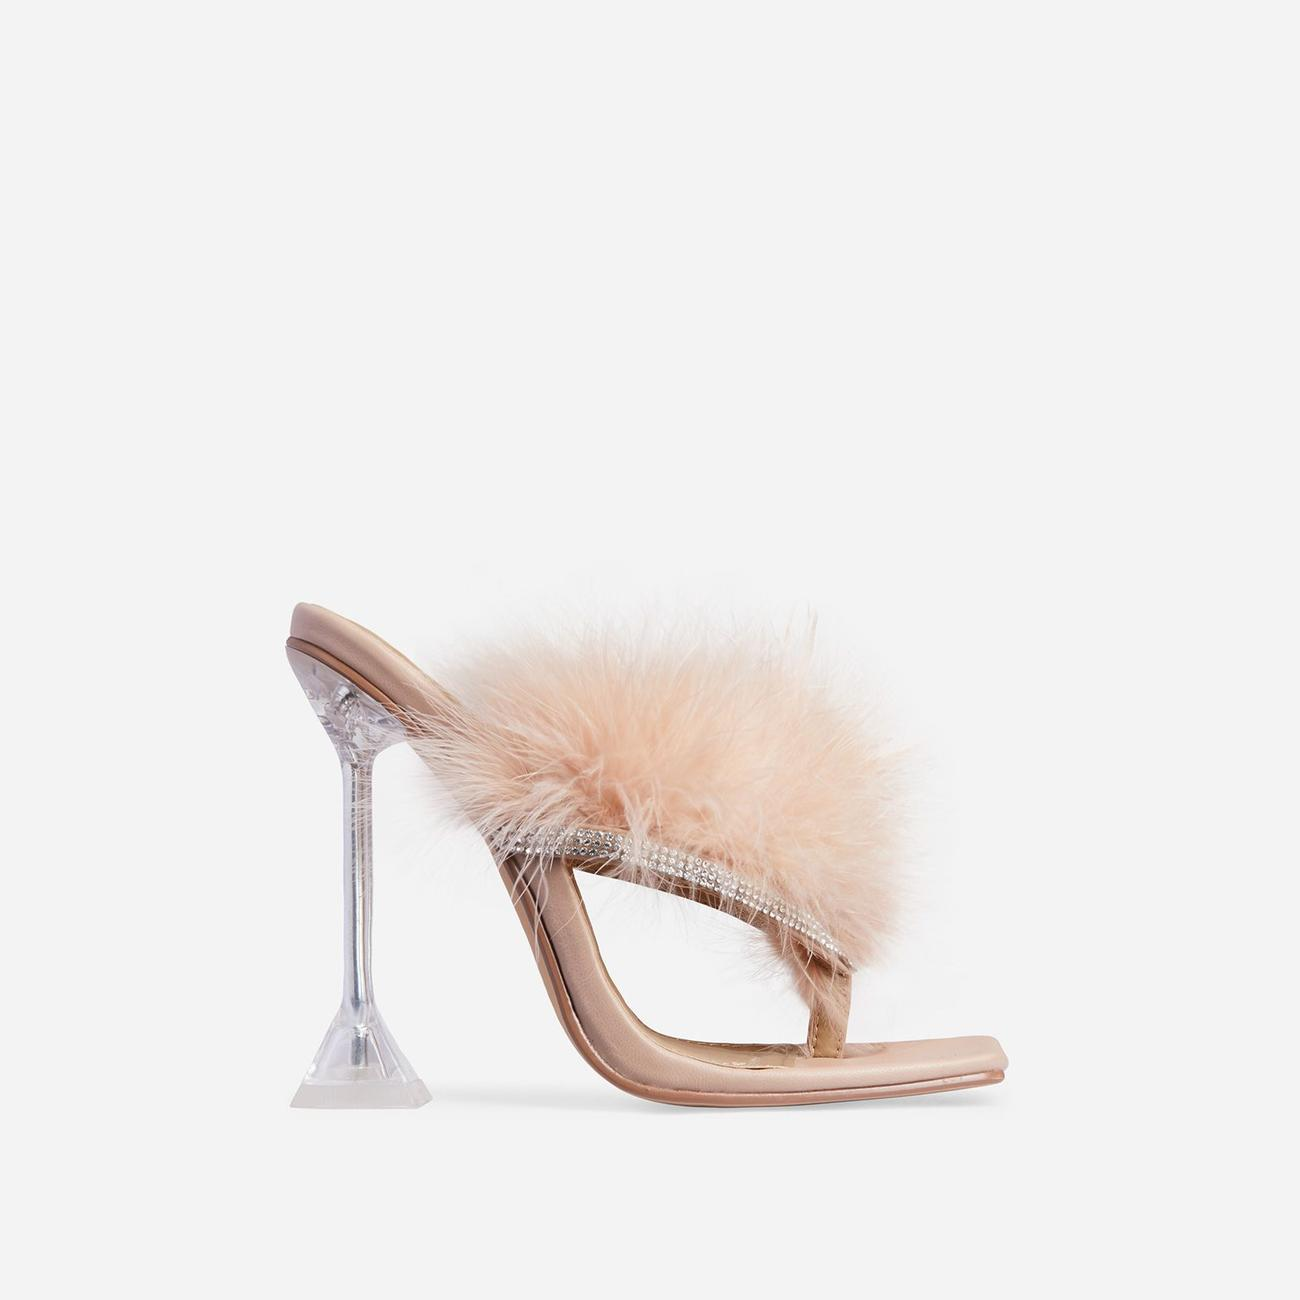 Rich-AF Diamante Detail Fluffy Square Toe Clear Perspex Pyramid Heel Mule In Nude Faux Leather Image 1